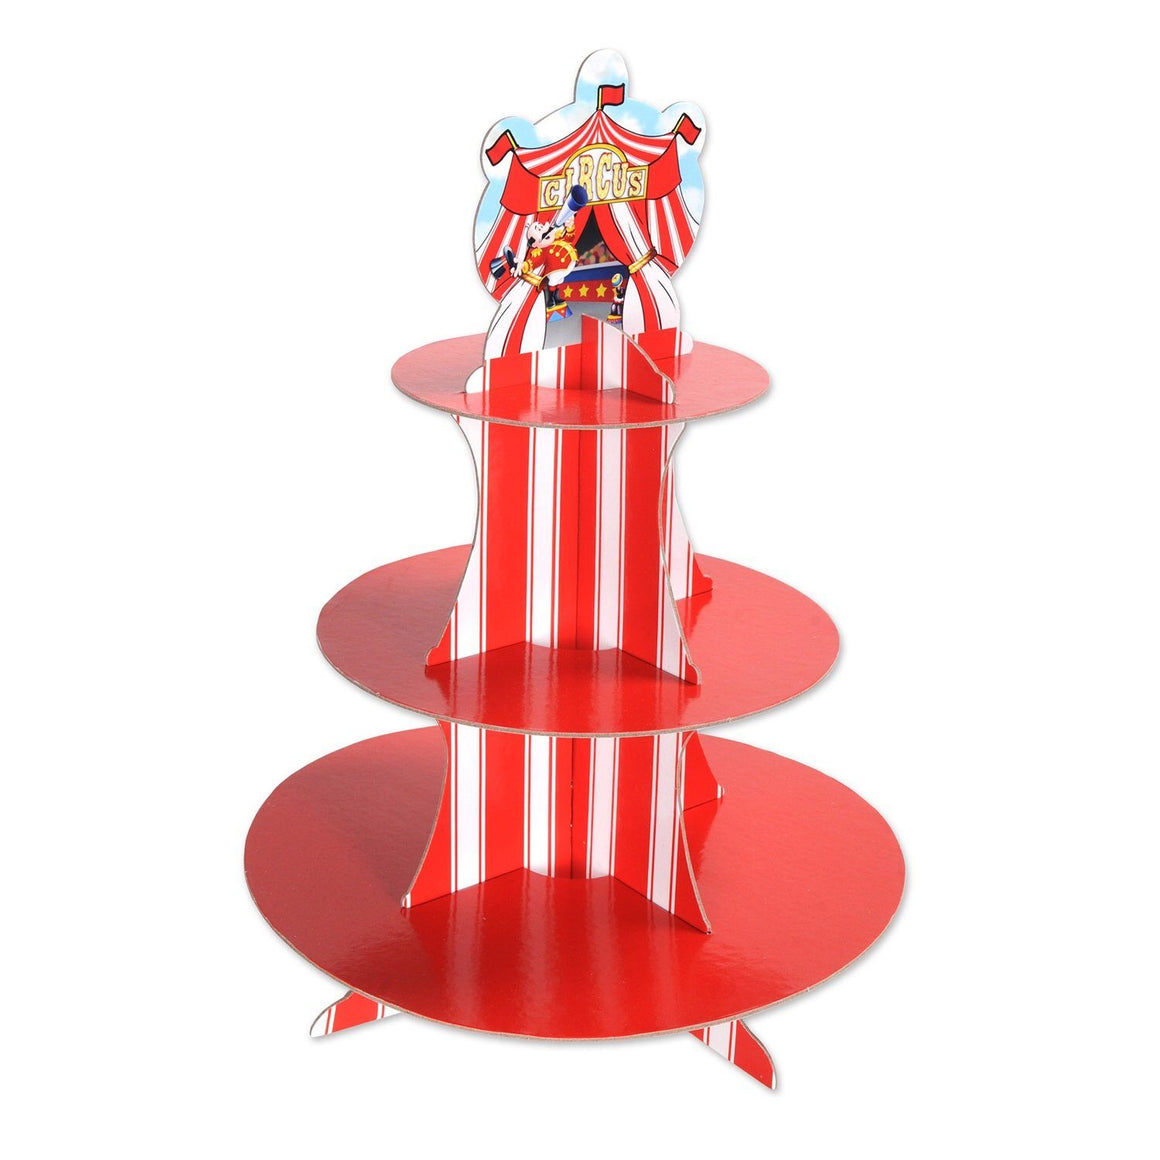 TREAT STAND - CIRCUS TENT, TREAT STAND, SKS - Beistle Co - Bon + Co. Party Studio